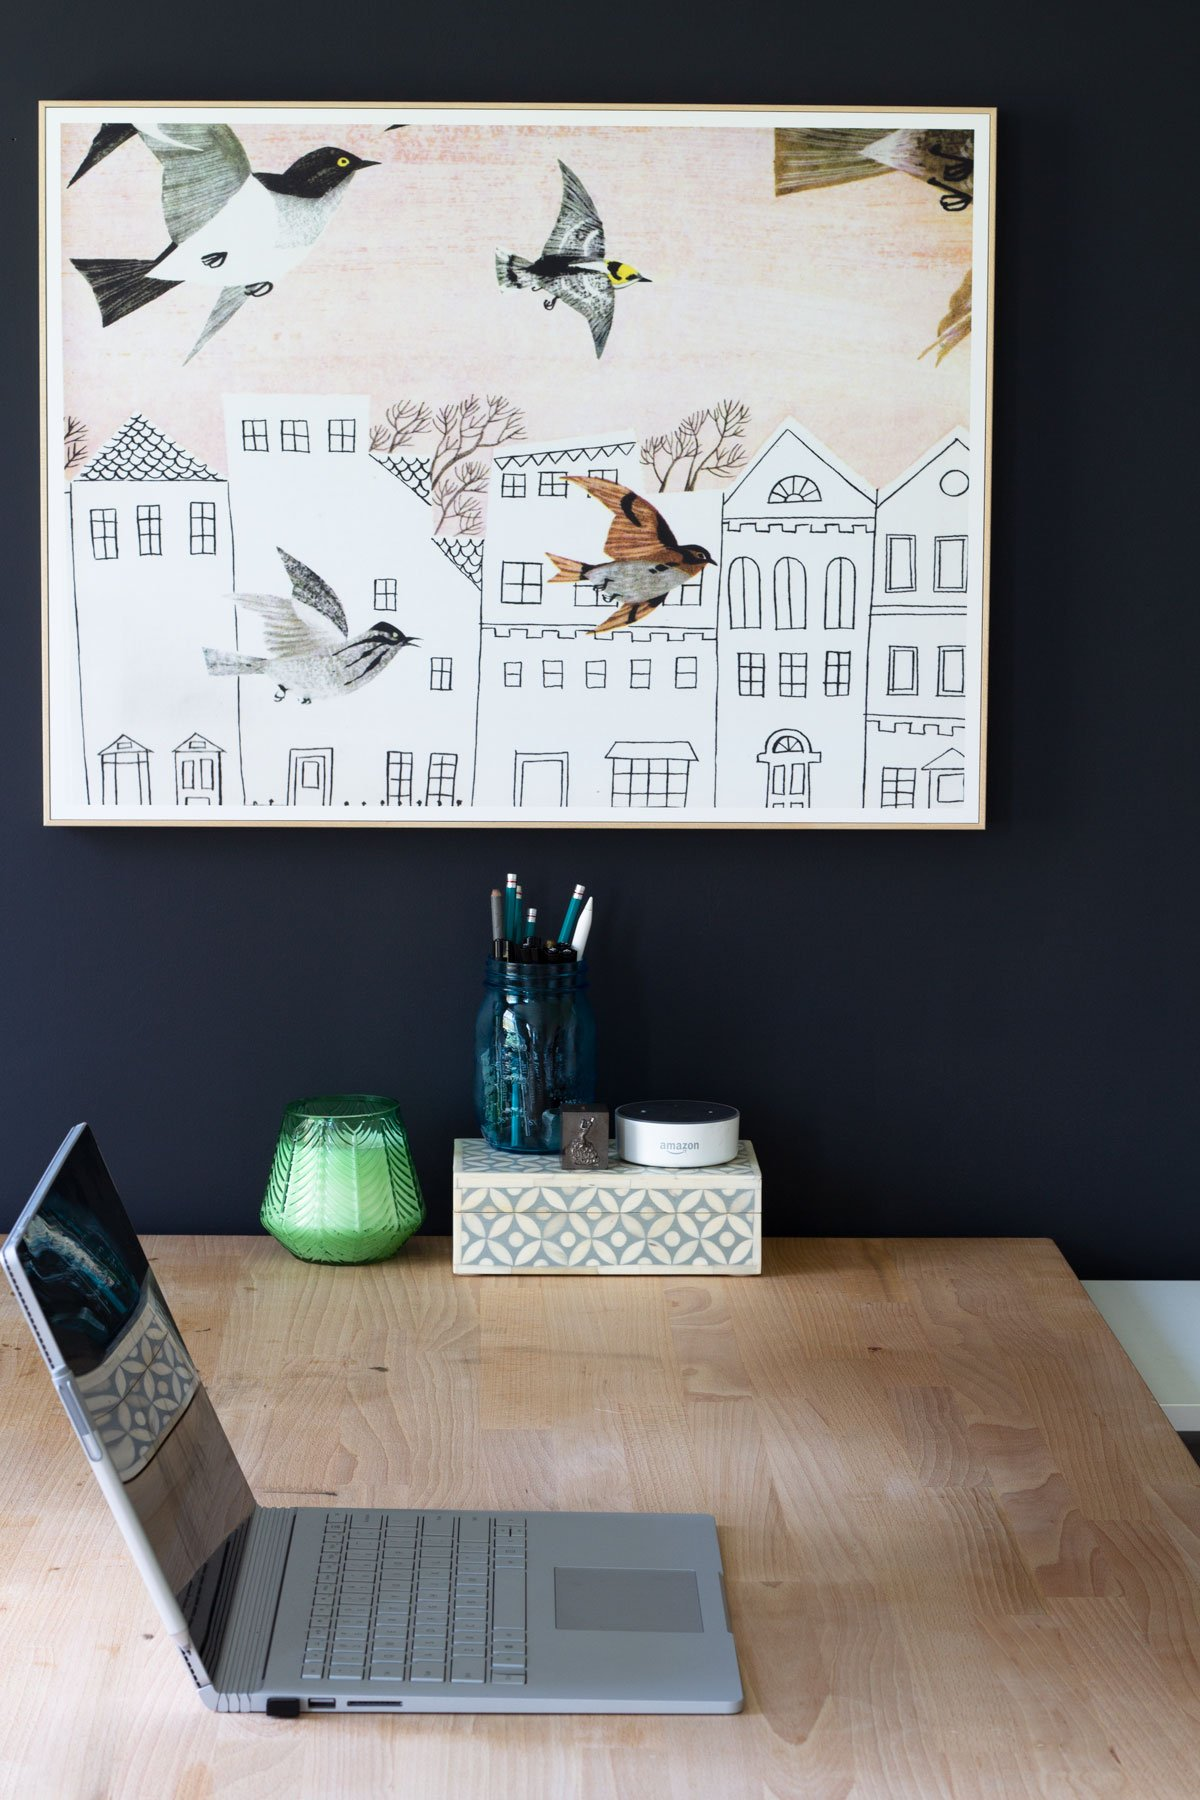 Graphic Home Office: One Room Challenge. Art produced by WhiteWall Labs